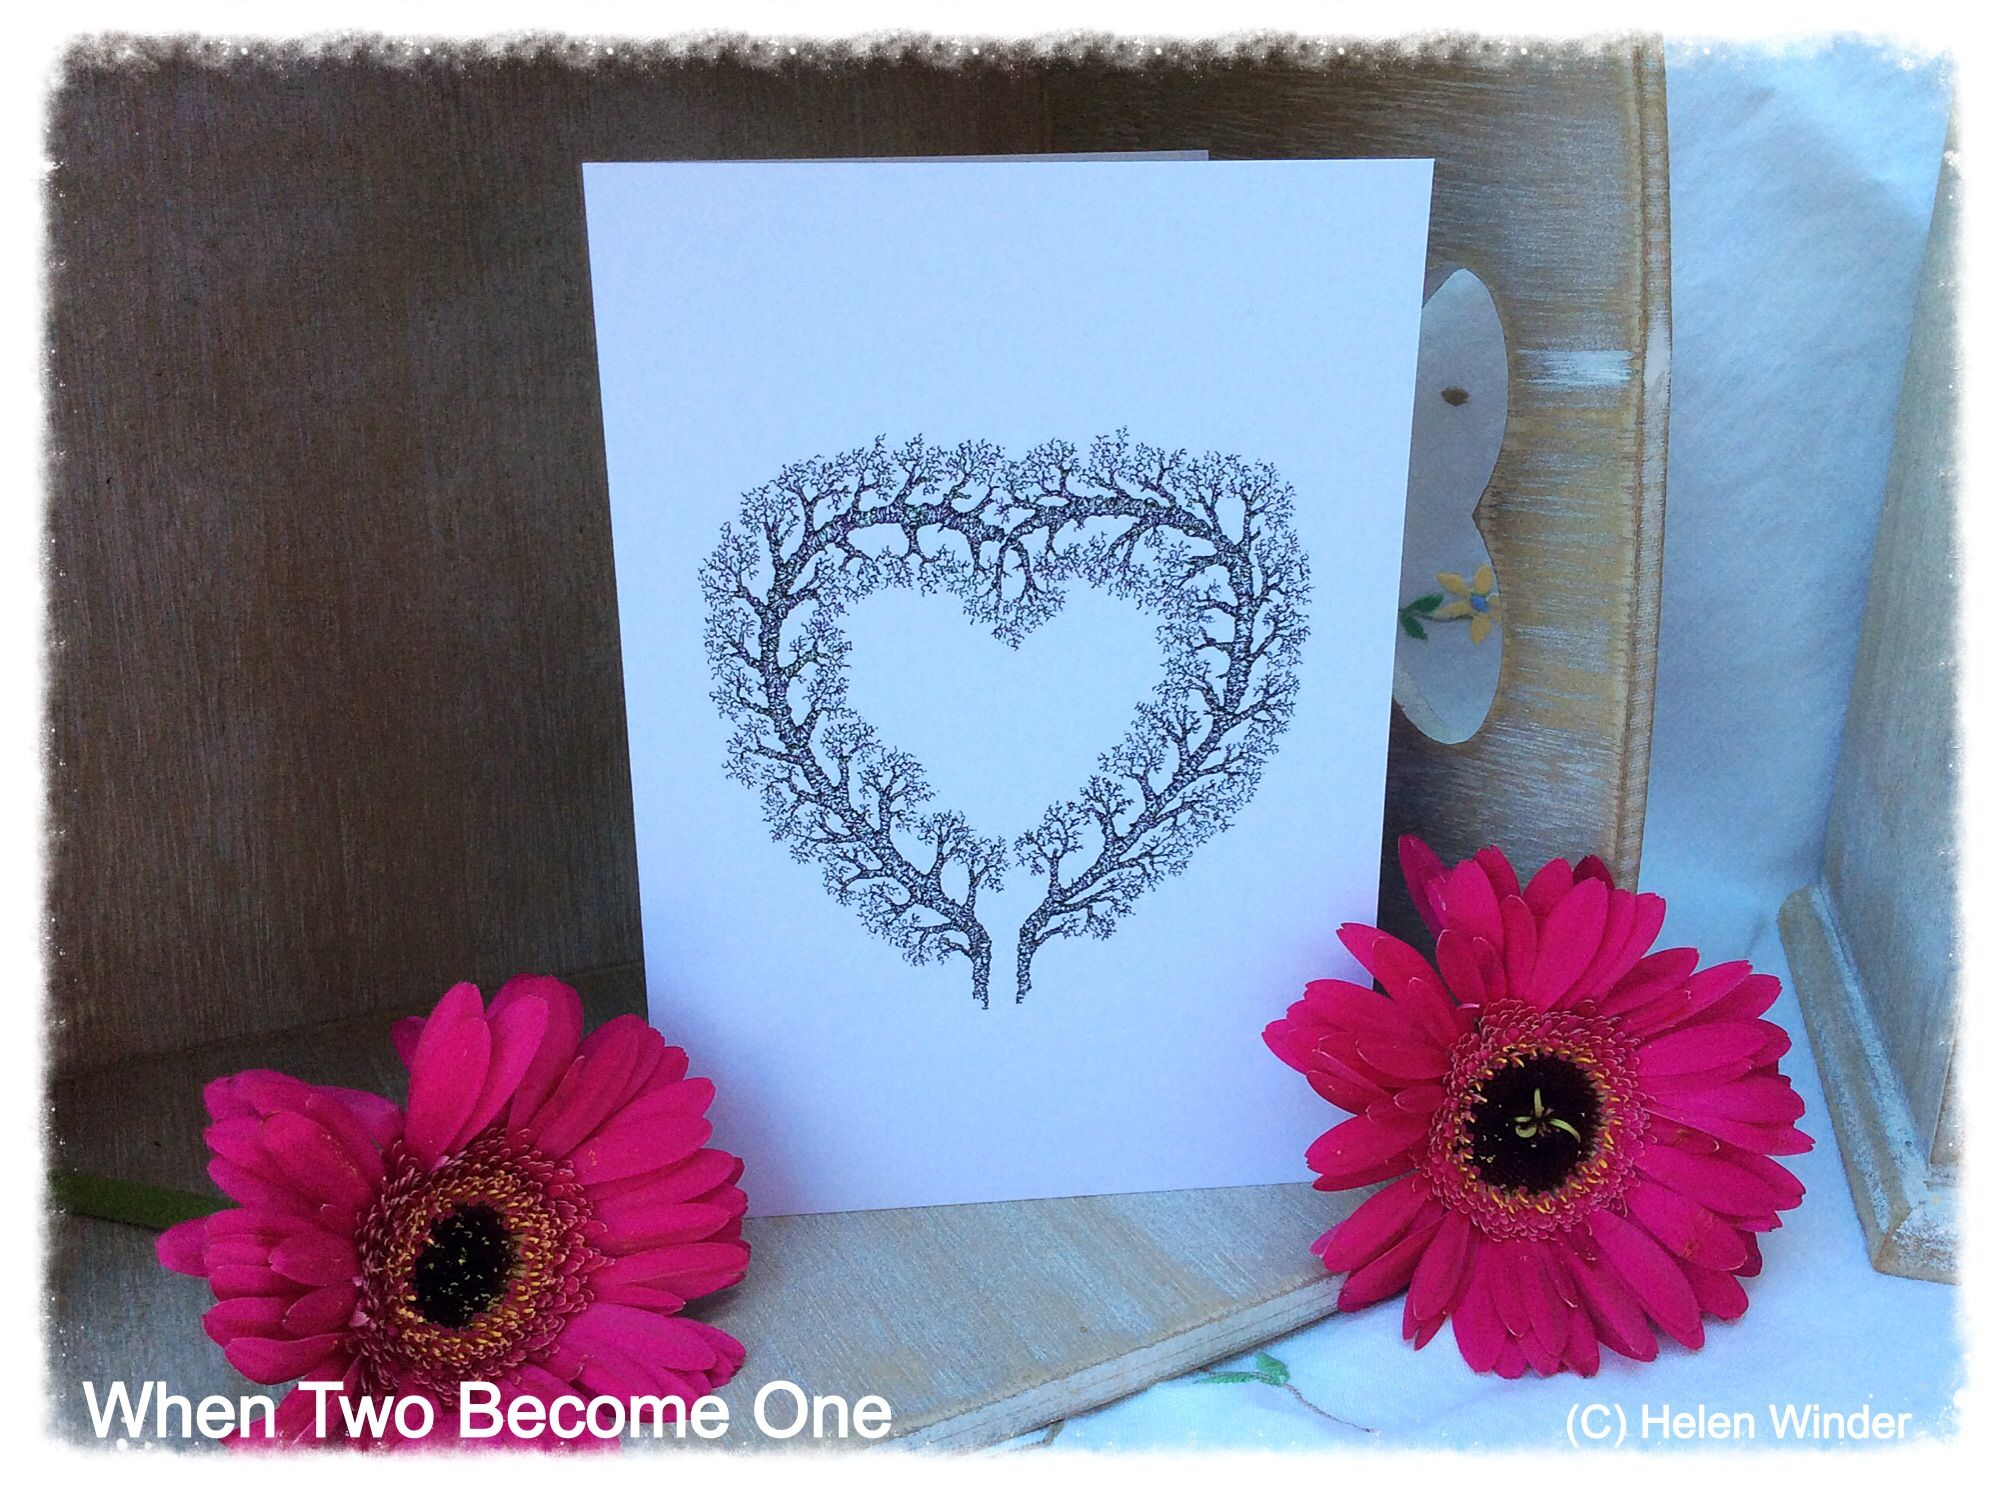 When Two One Greetings Card Available on Etsy